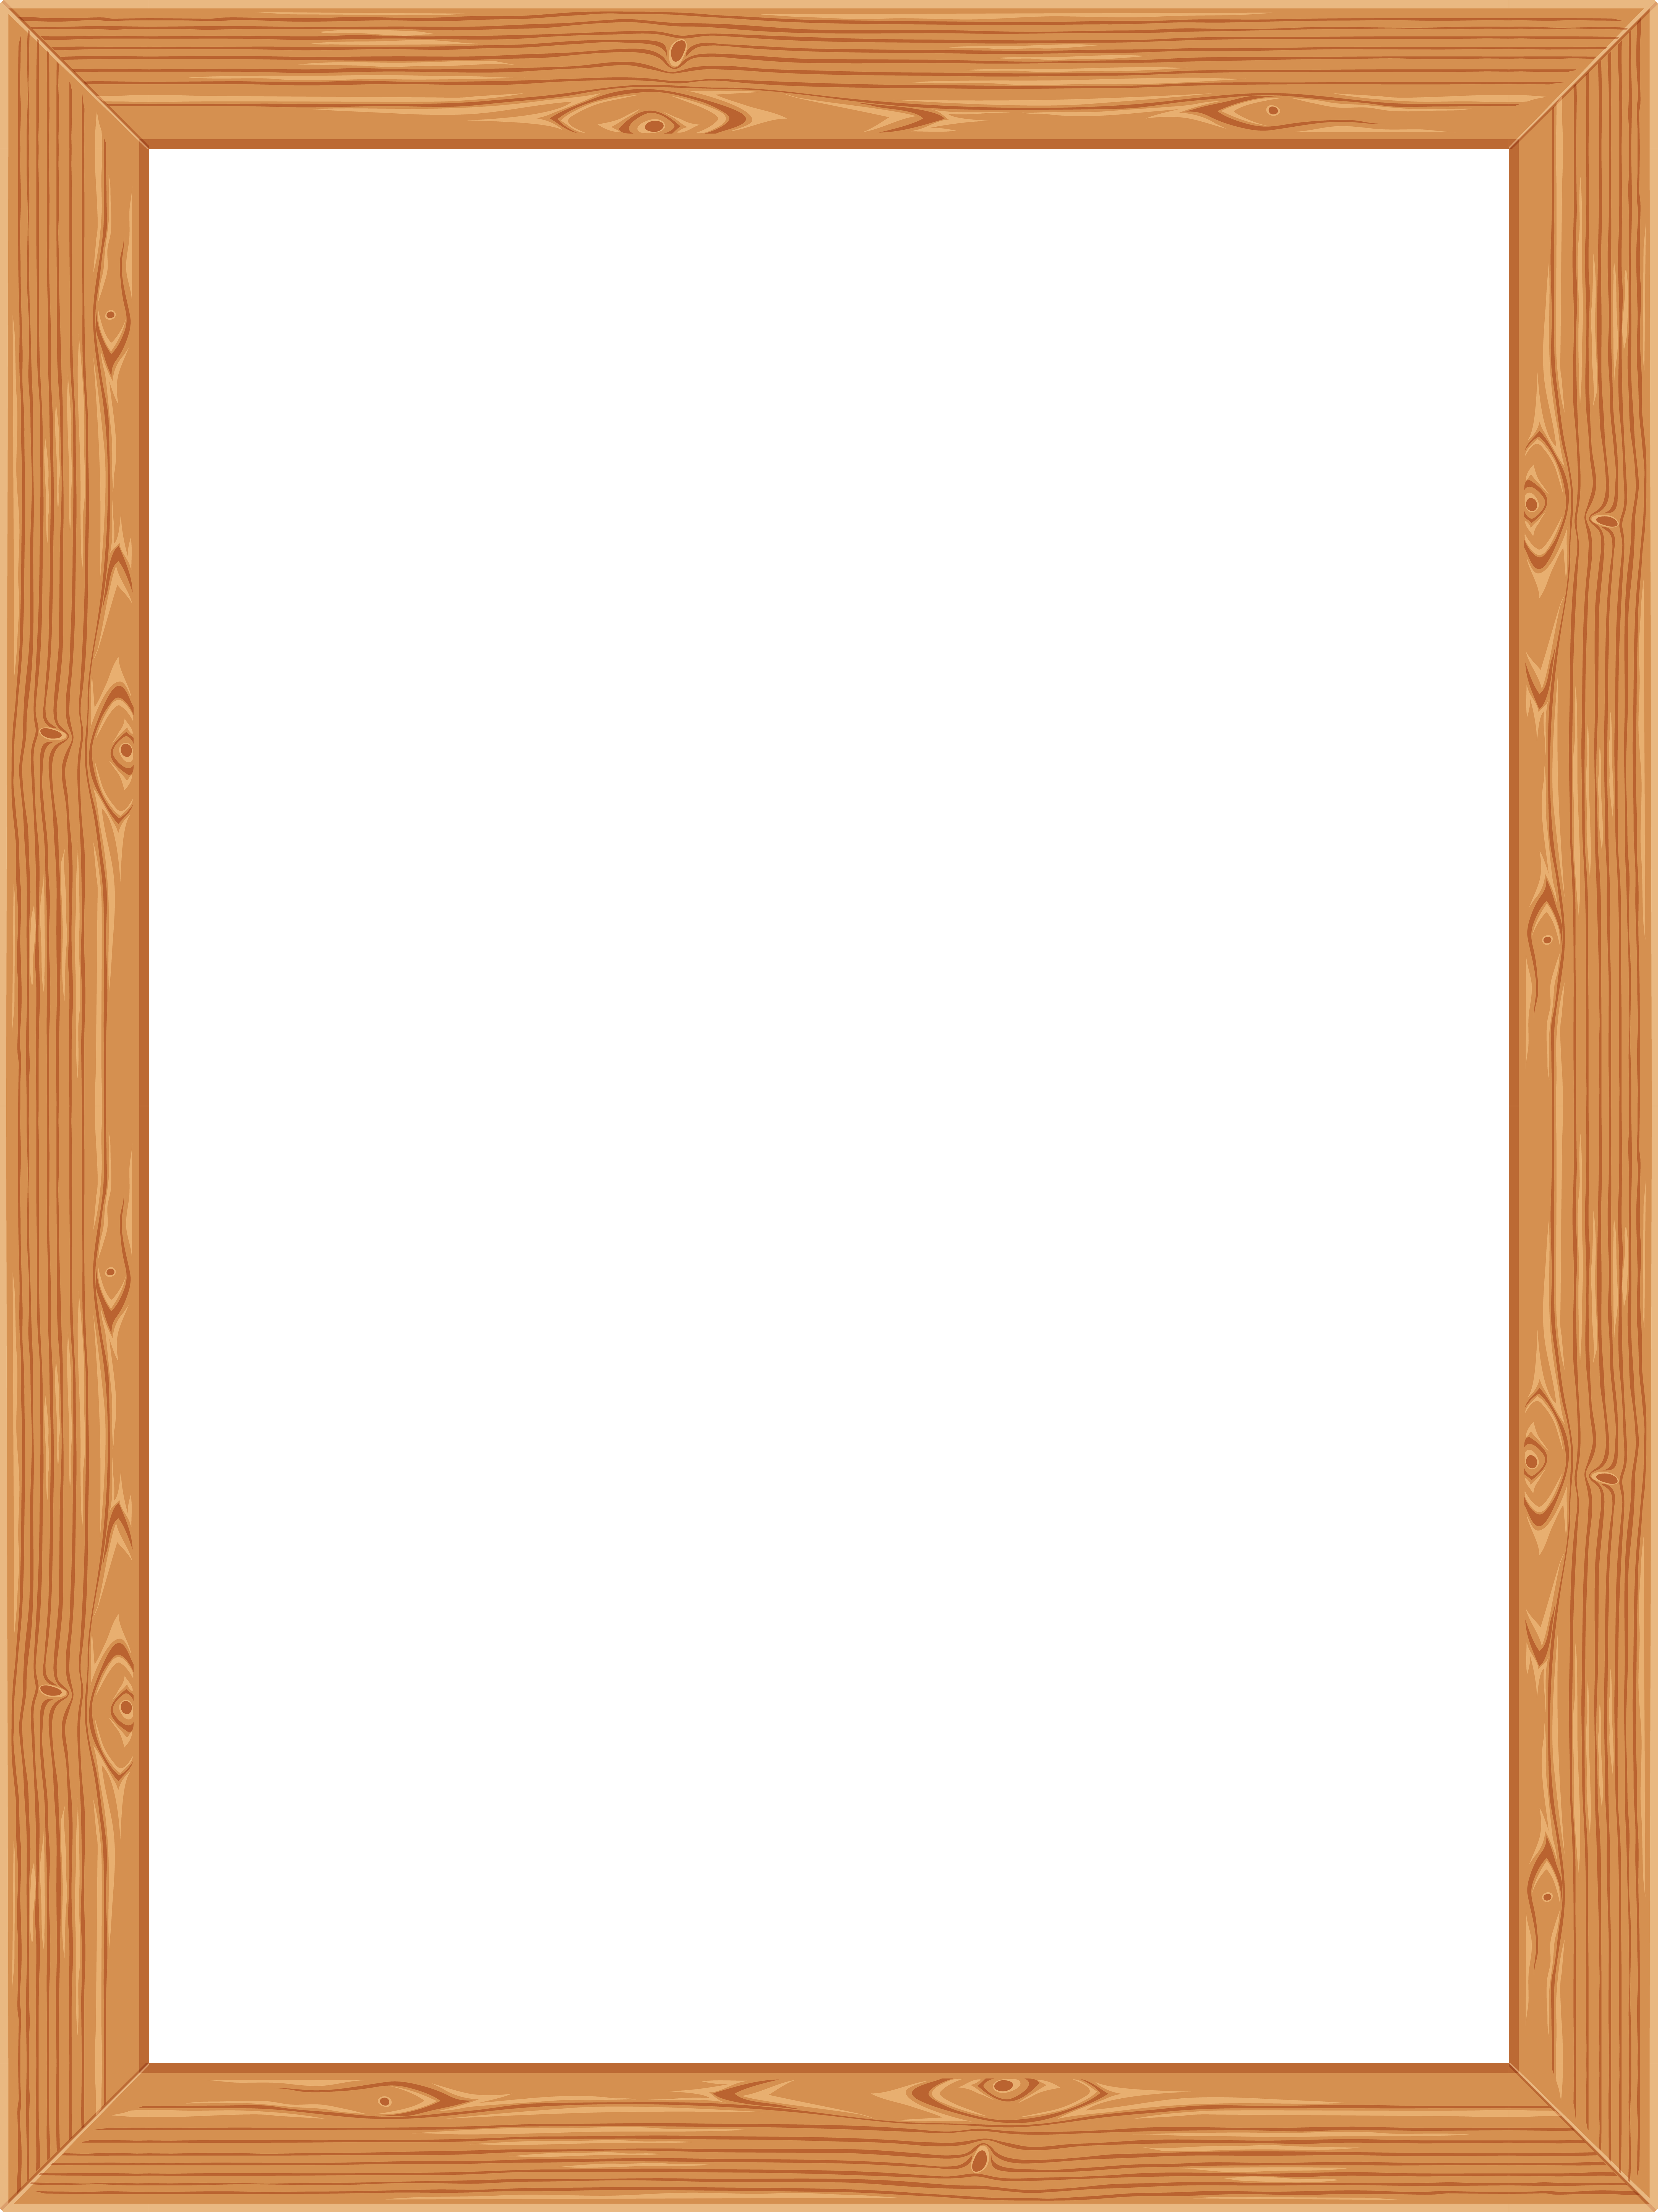 Transparent classic wooden image. Picture frame png